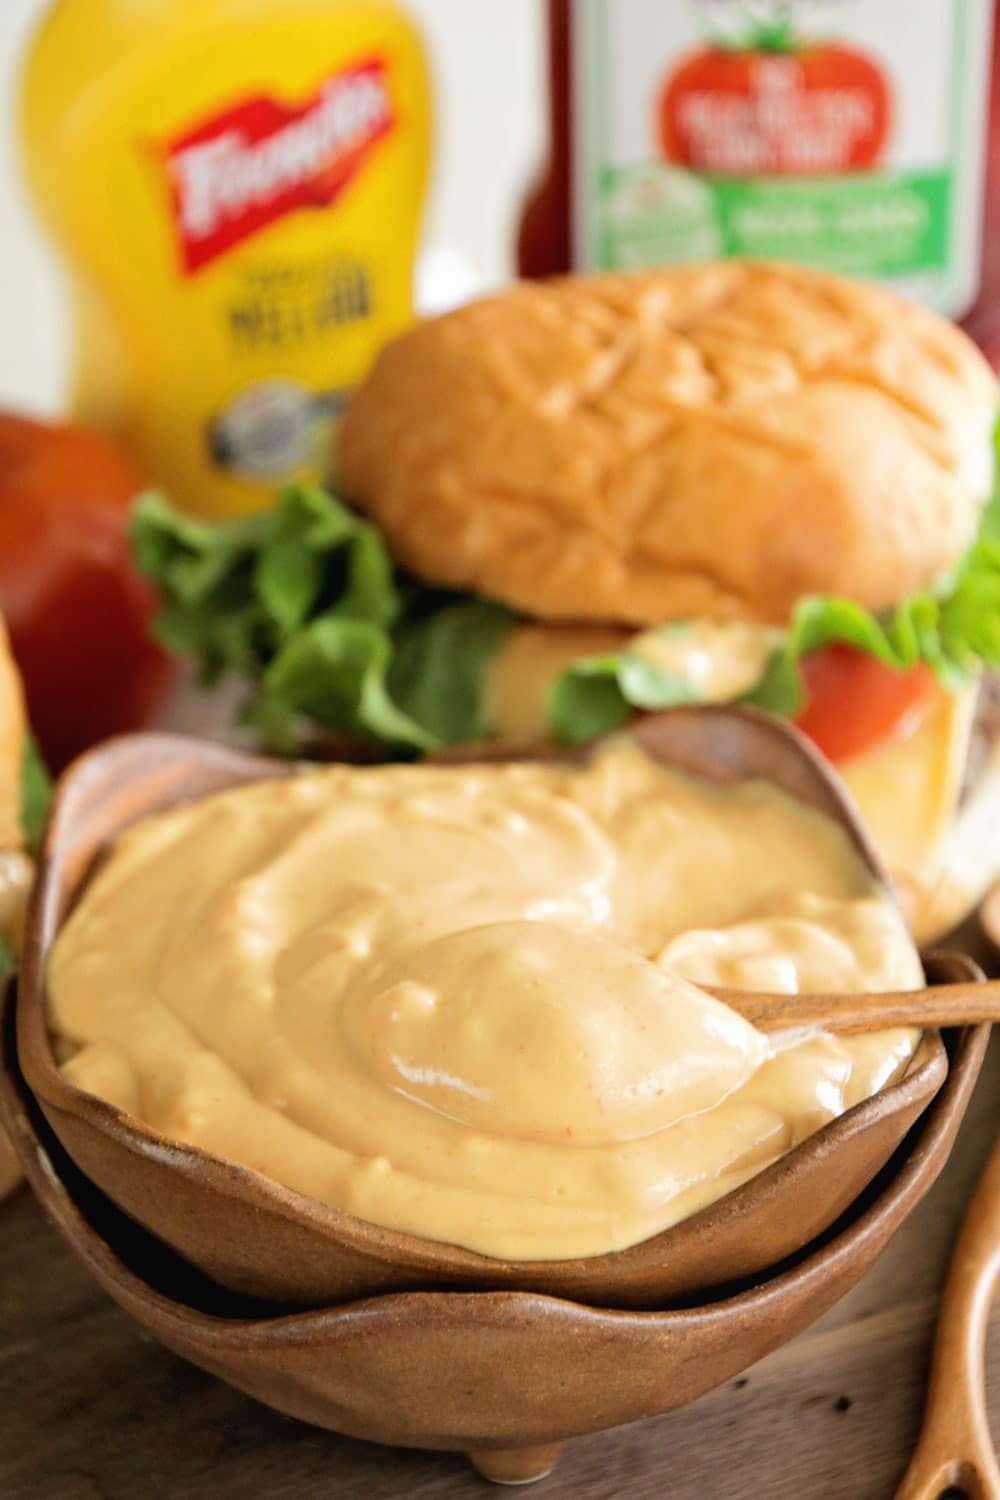 The best burger sauce ever julies eats treats be sure to subscribe to my newsletter here so you never miss a new recipe forumfinder Image collections